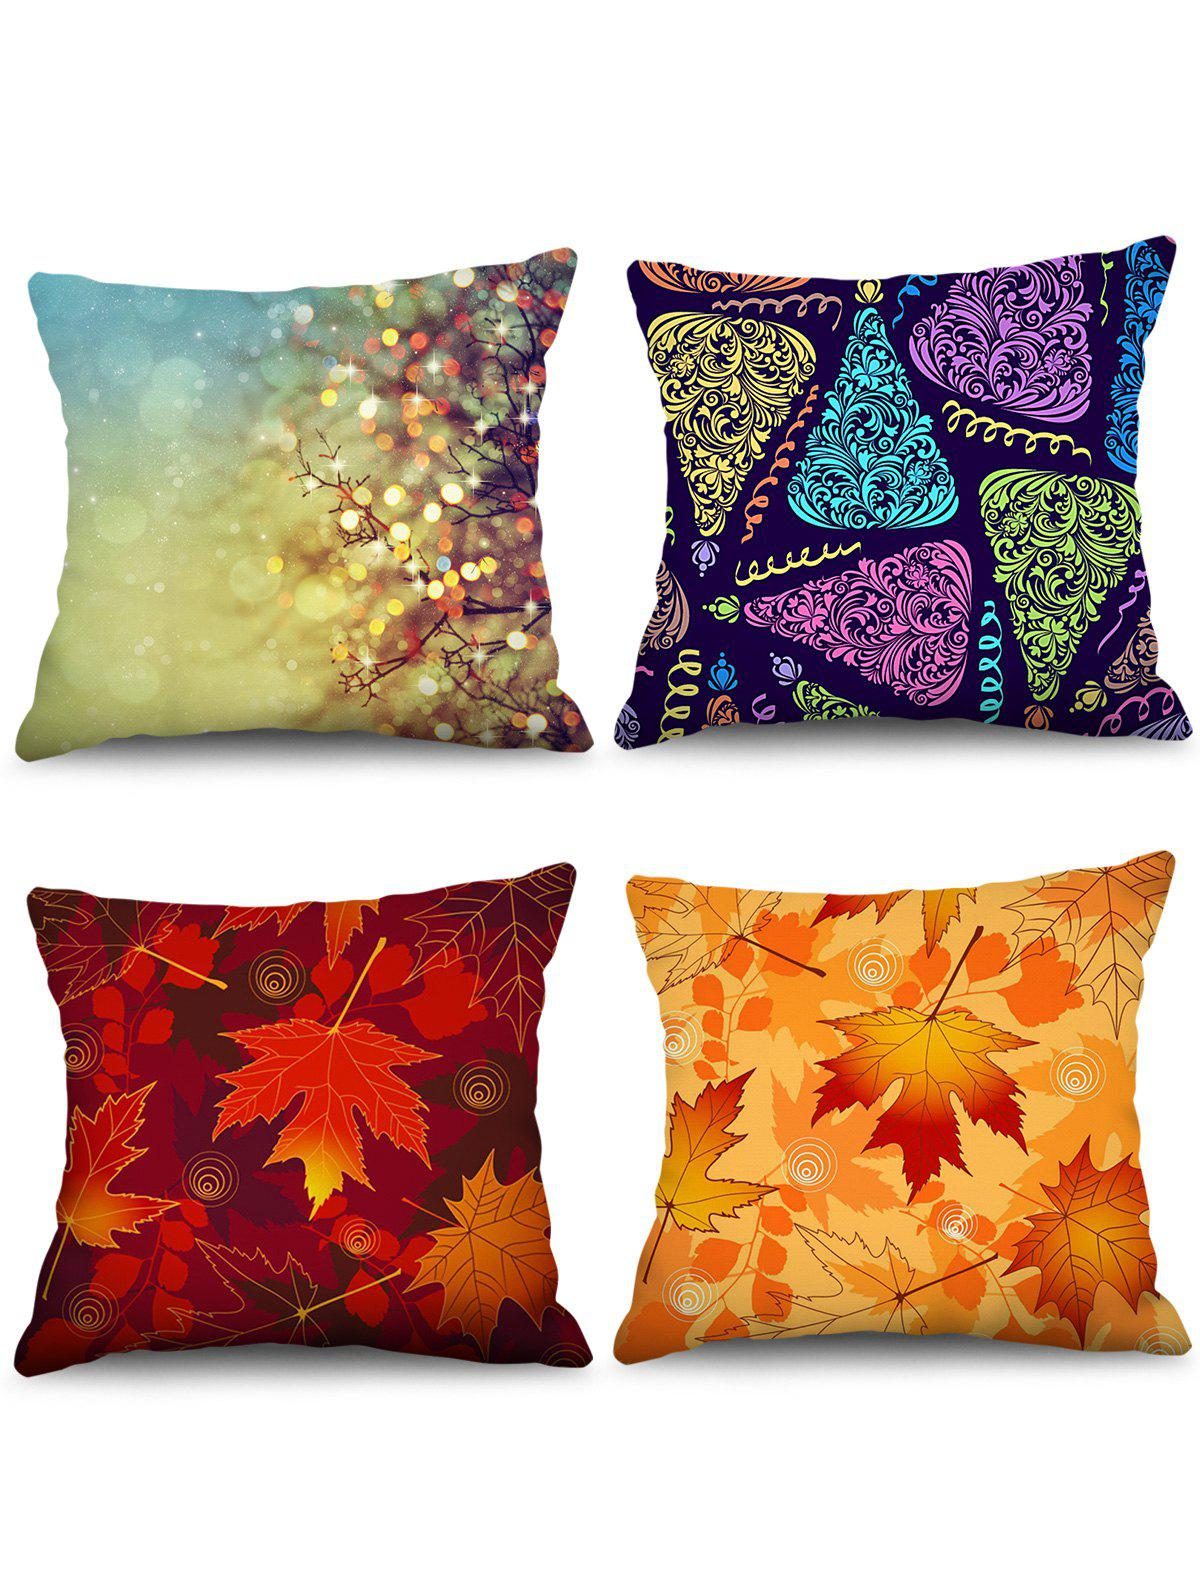 Hot 4PCS Maple Leaf Printed Theme Pillowcases